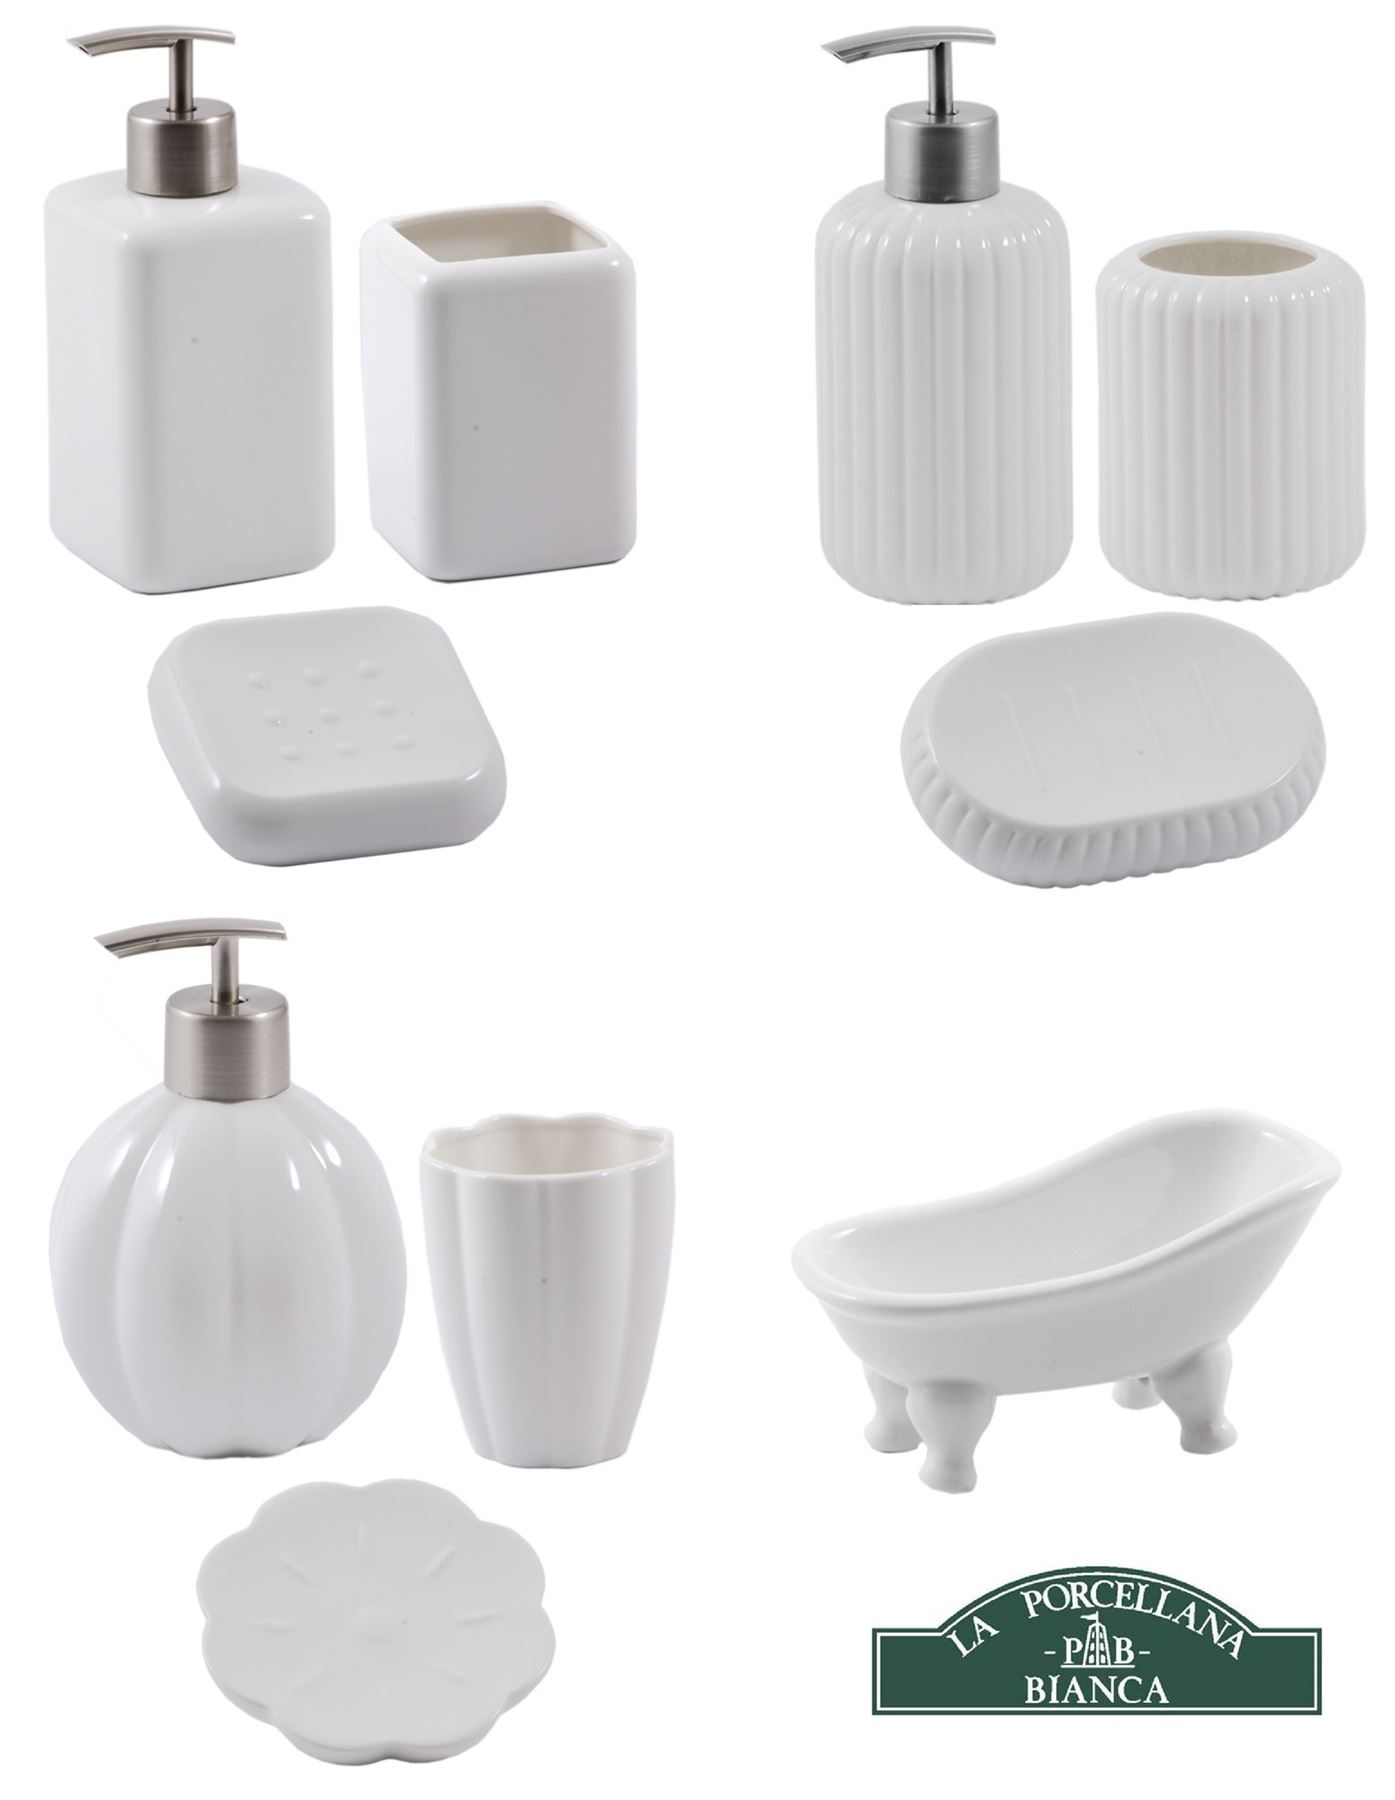 La porcellana bianca bathroom sets soap dish dispenser toothbrush holder - Bathroom soap dish sets ...